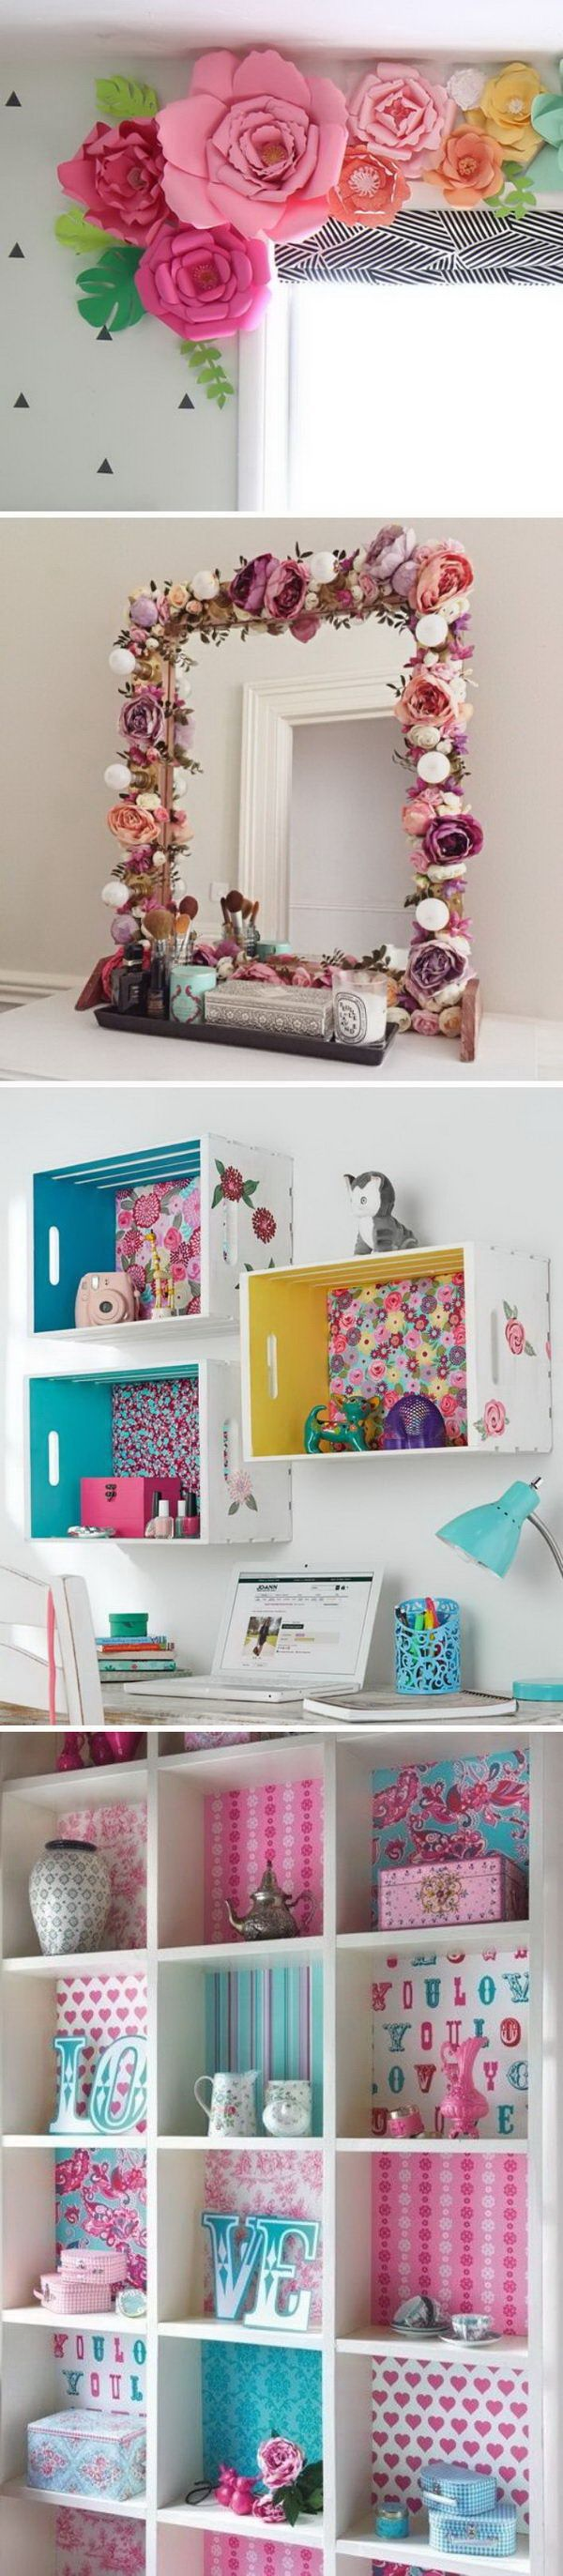 Over 20 great DIY projects to decorate a girl's bedroom